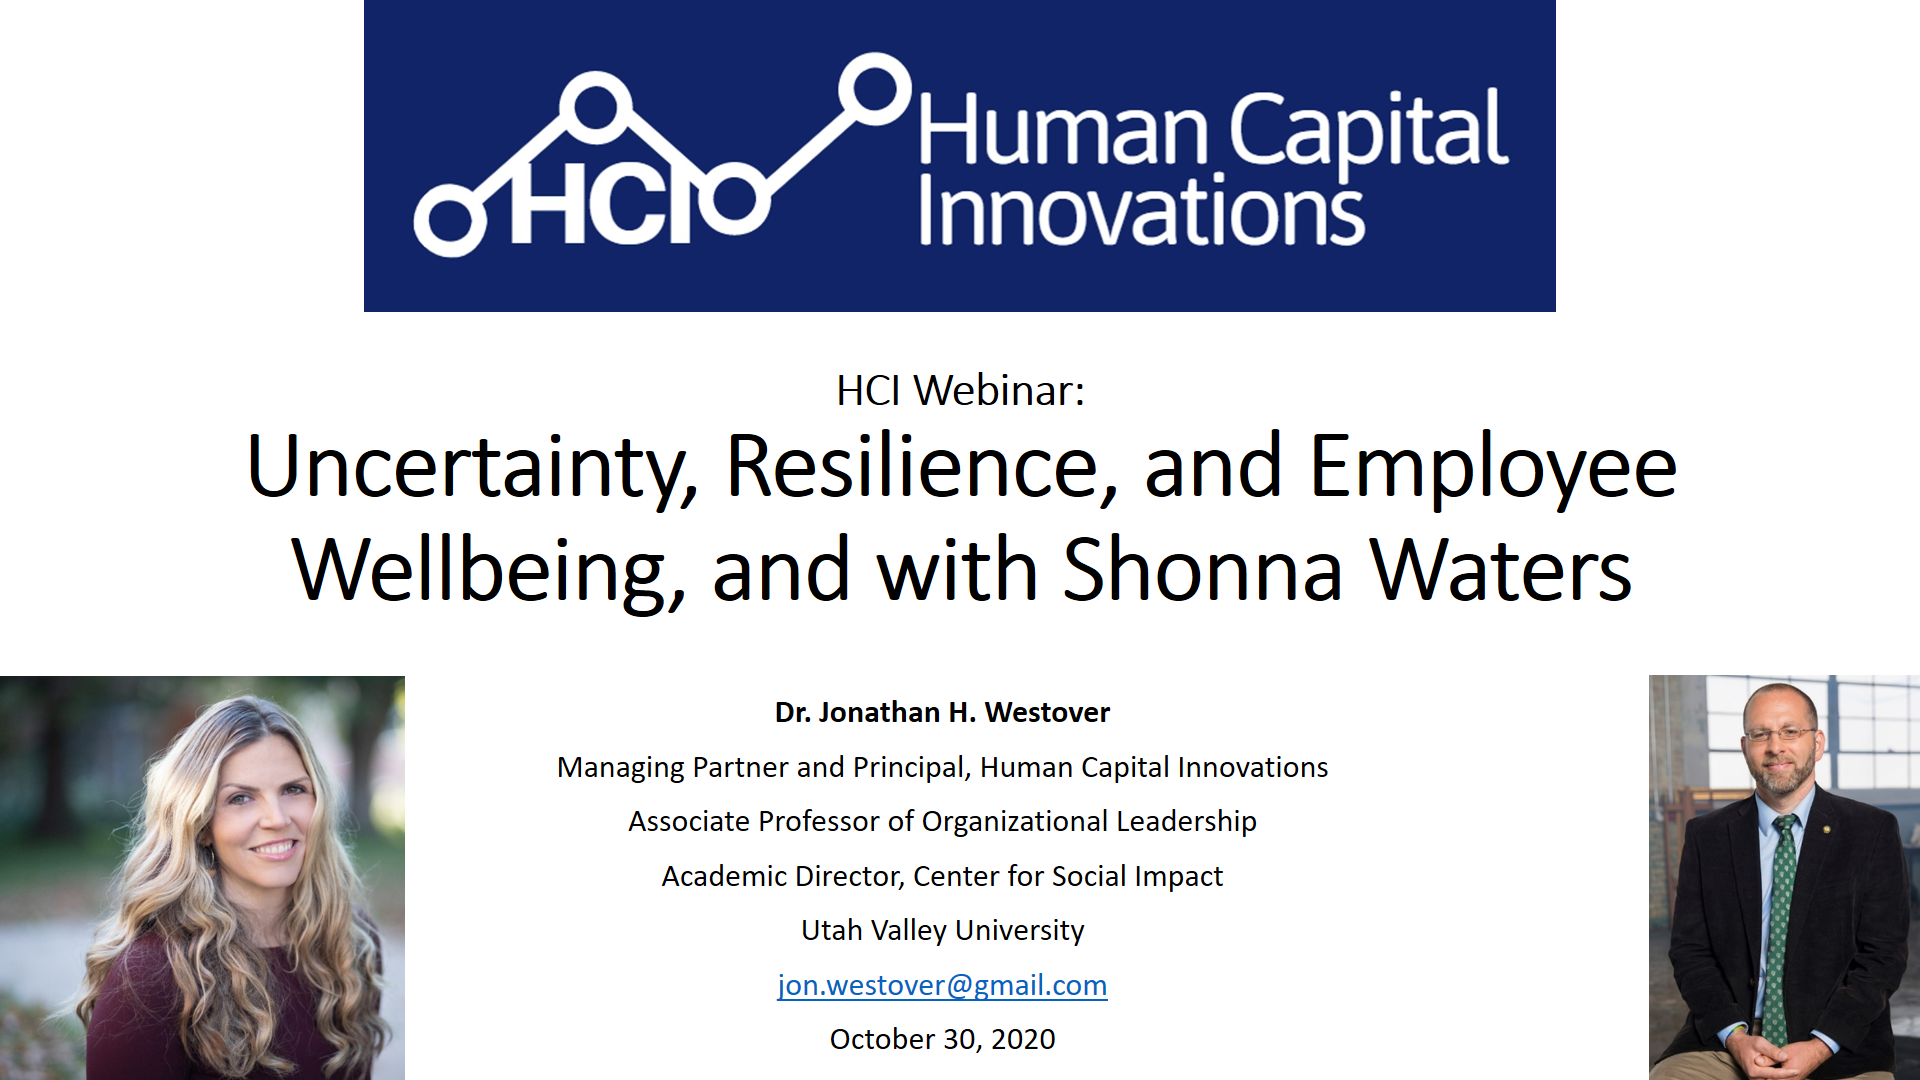 Uncertainty, Resilience, and Employee Wellbeing